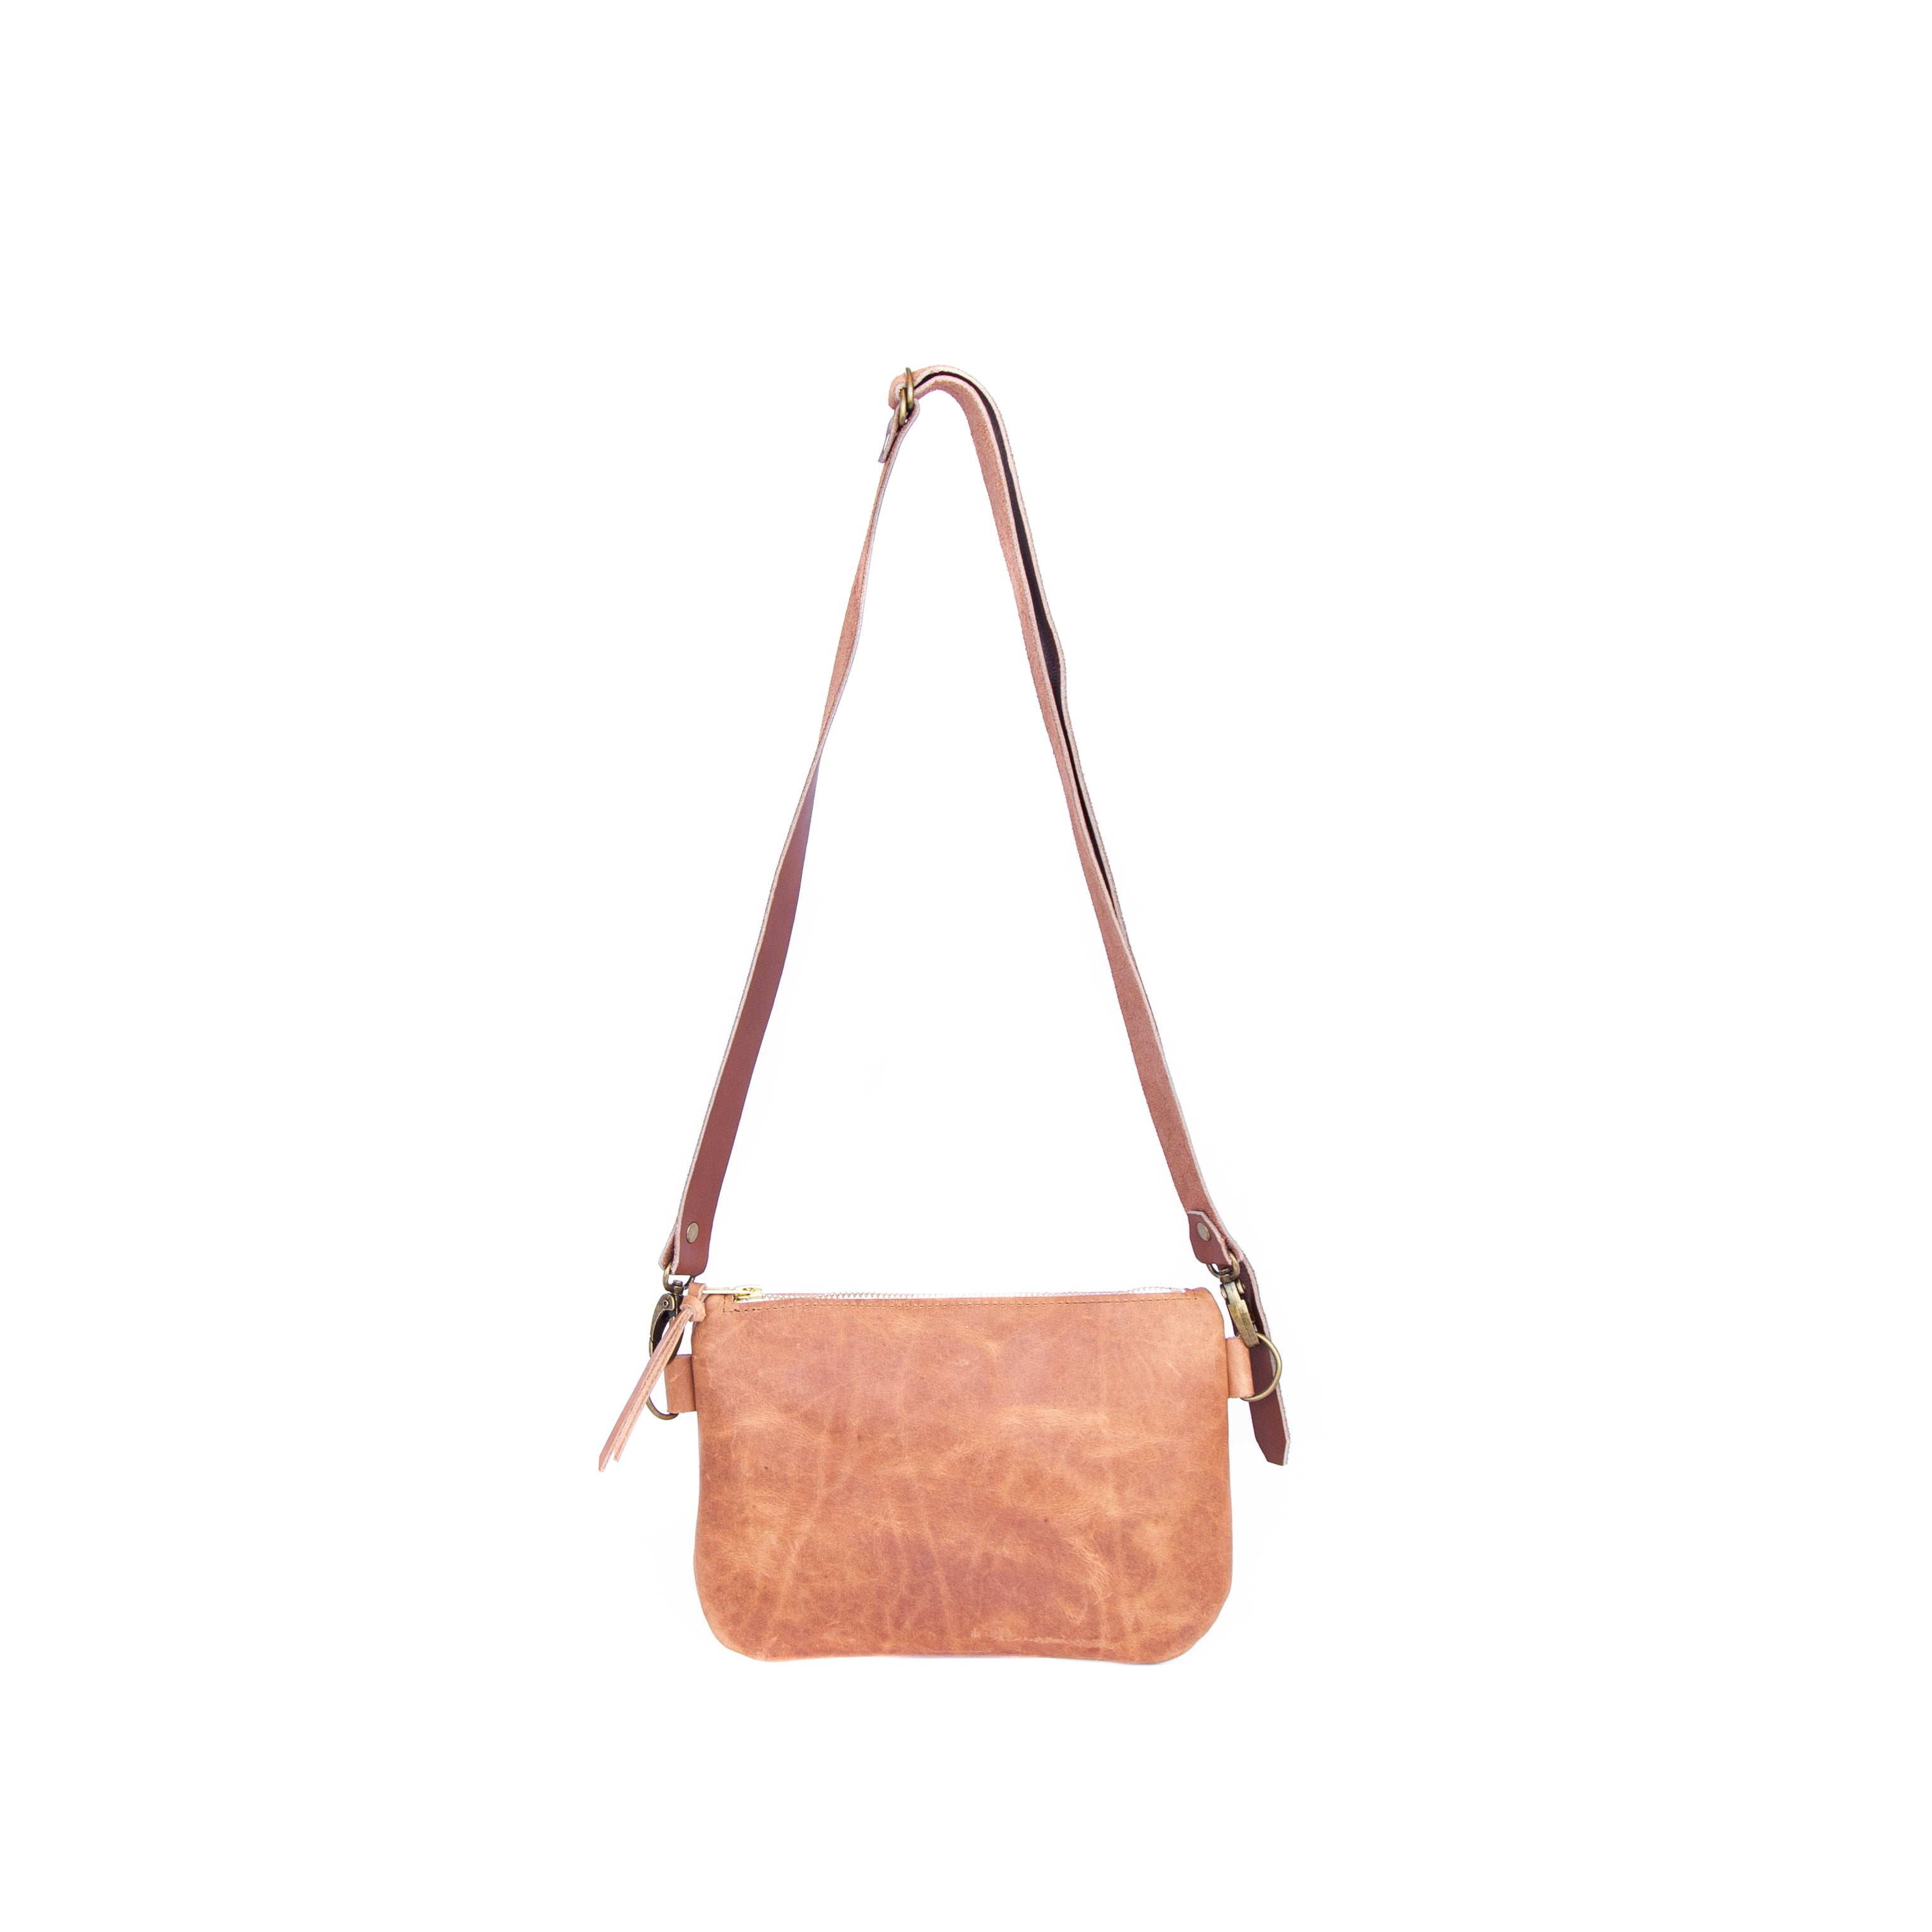 The Dime Bag in Oiled Veg Tan Leather - handcrafted by Market Canvas Leather in Tofino, BC, Canada